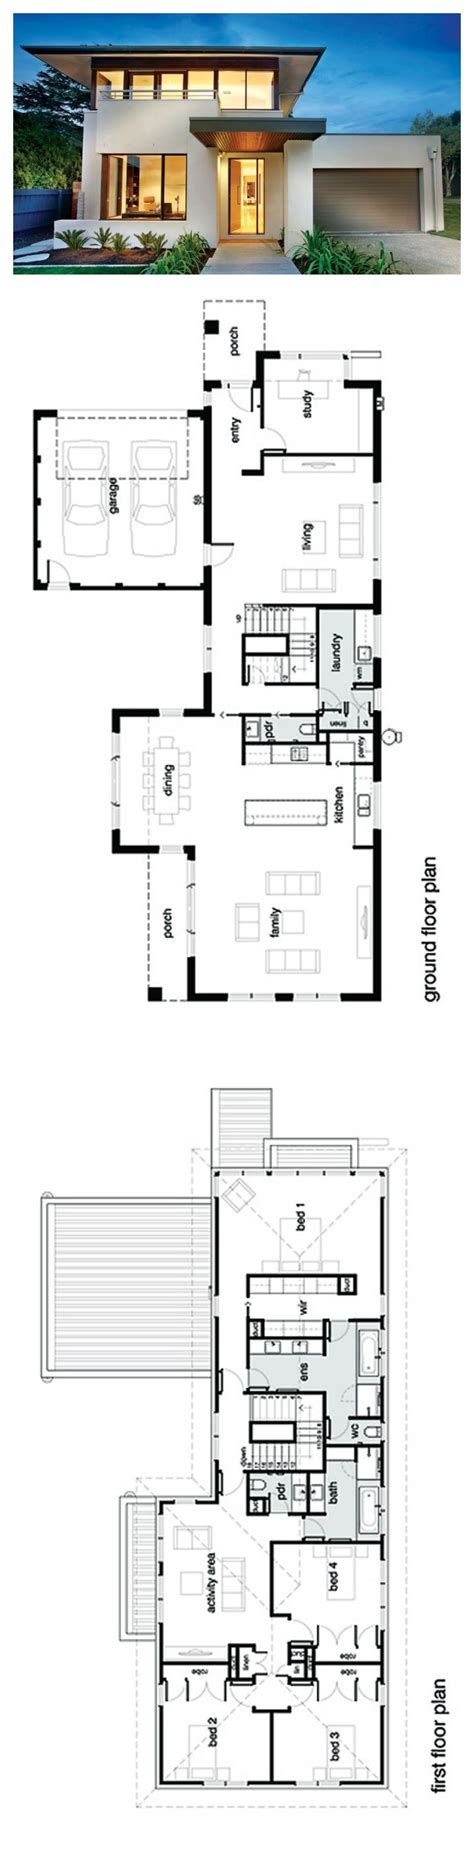 floor plan of a modern house the 25 best ideas about modern house plans on pinterest